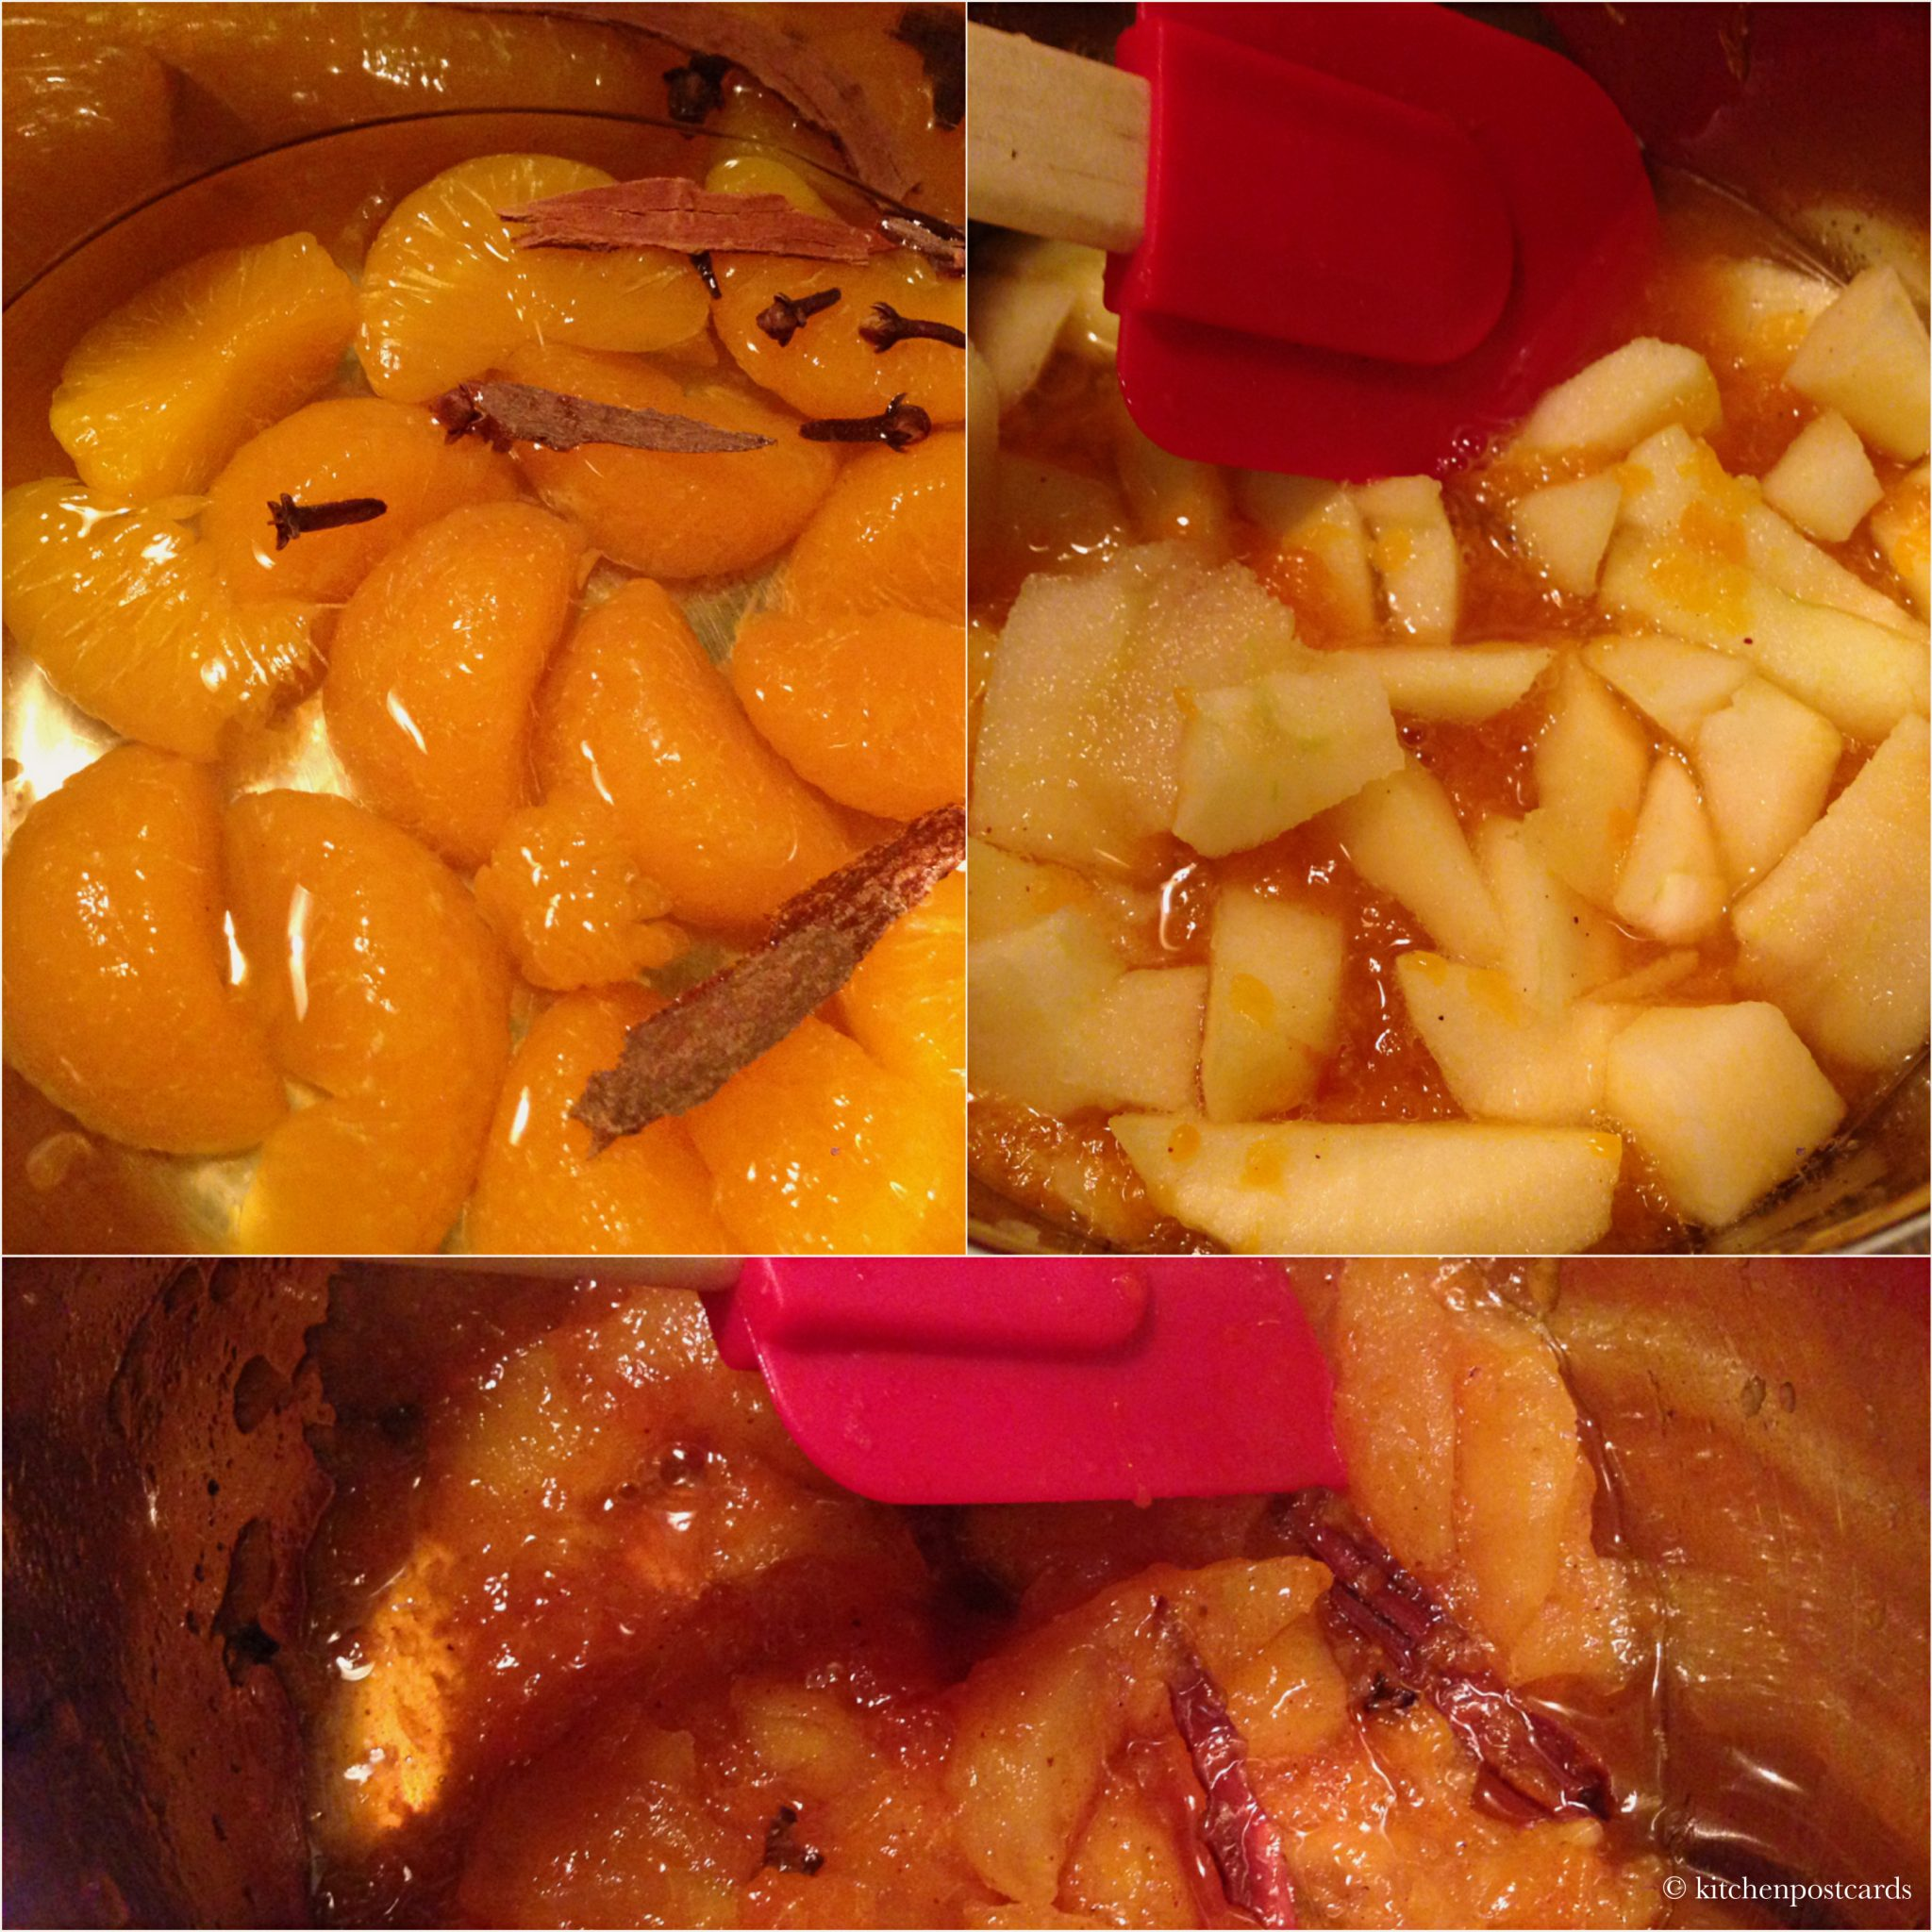 Stewing fruit.